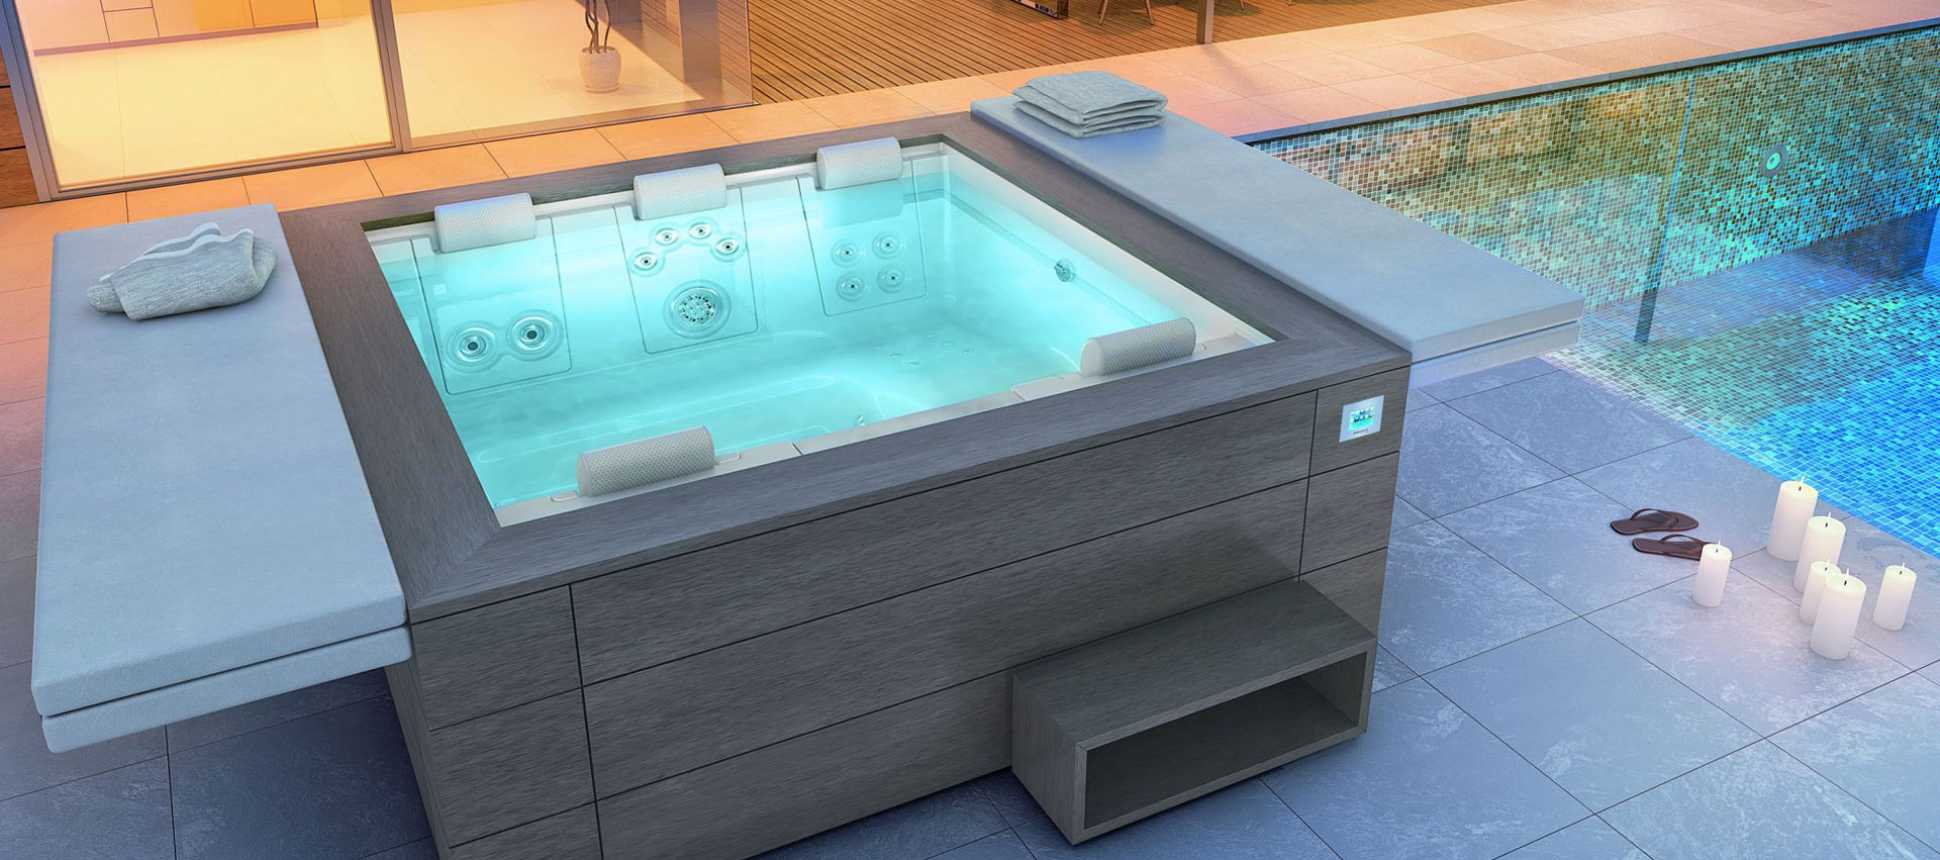 whirlpool pool bauen swimmingpool schweiz ac schwimmbadtechnik. Black Bedroom Furniture Sets. Home Design Ideas